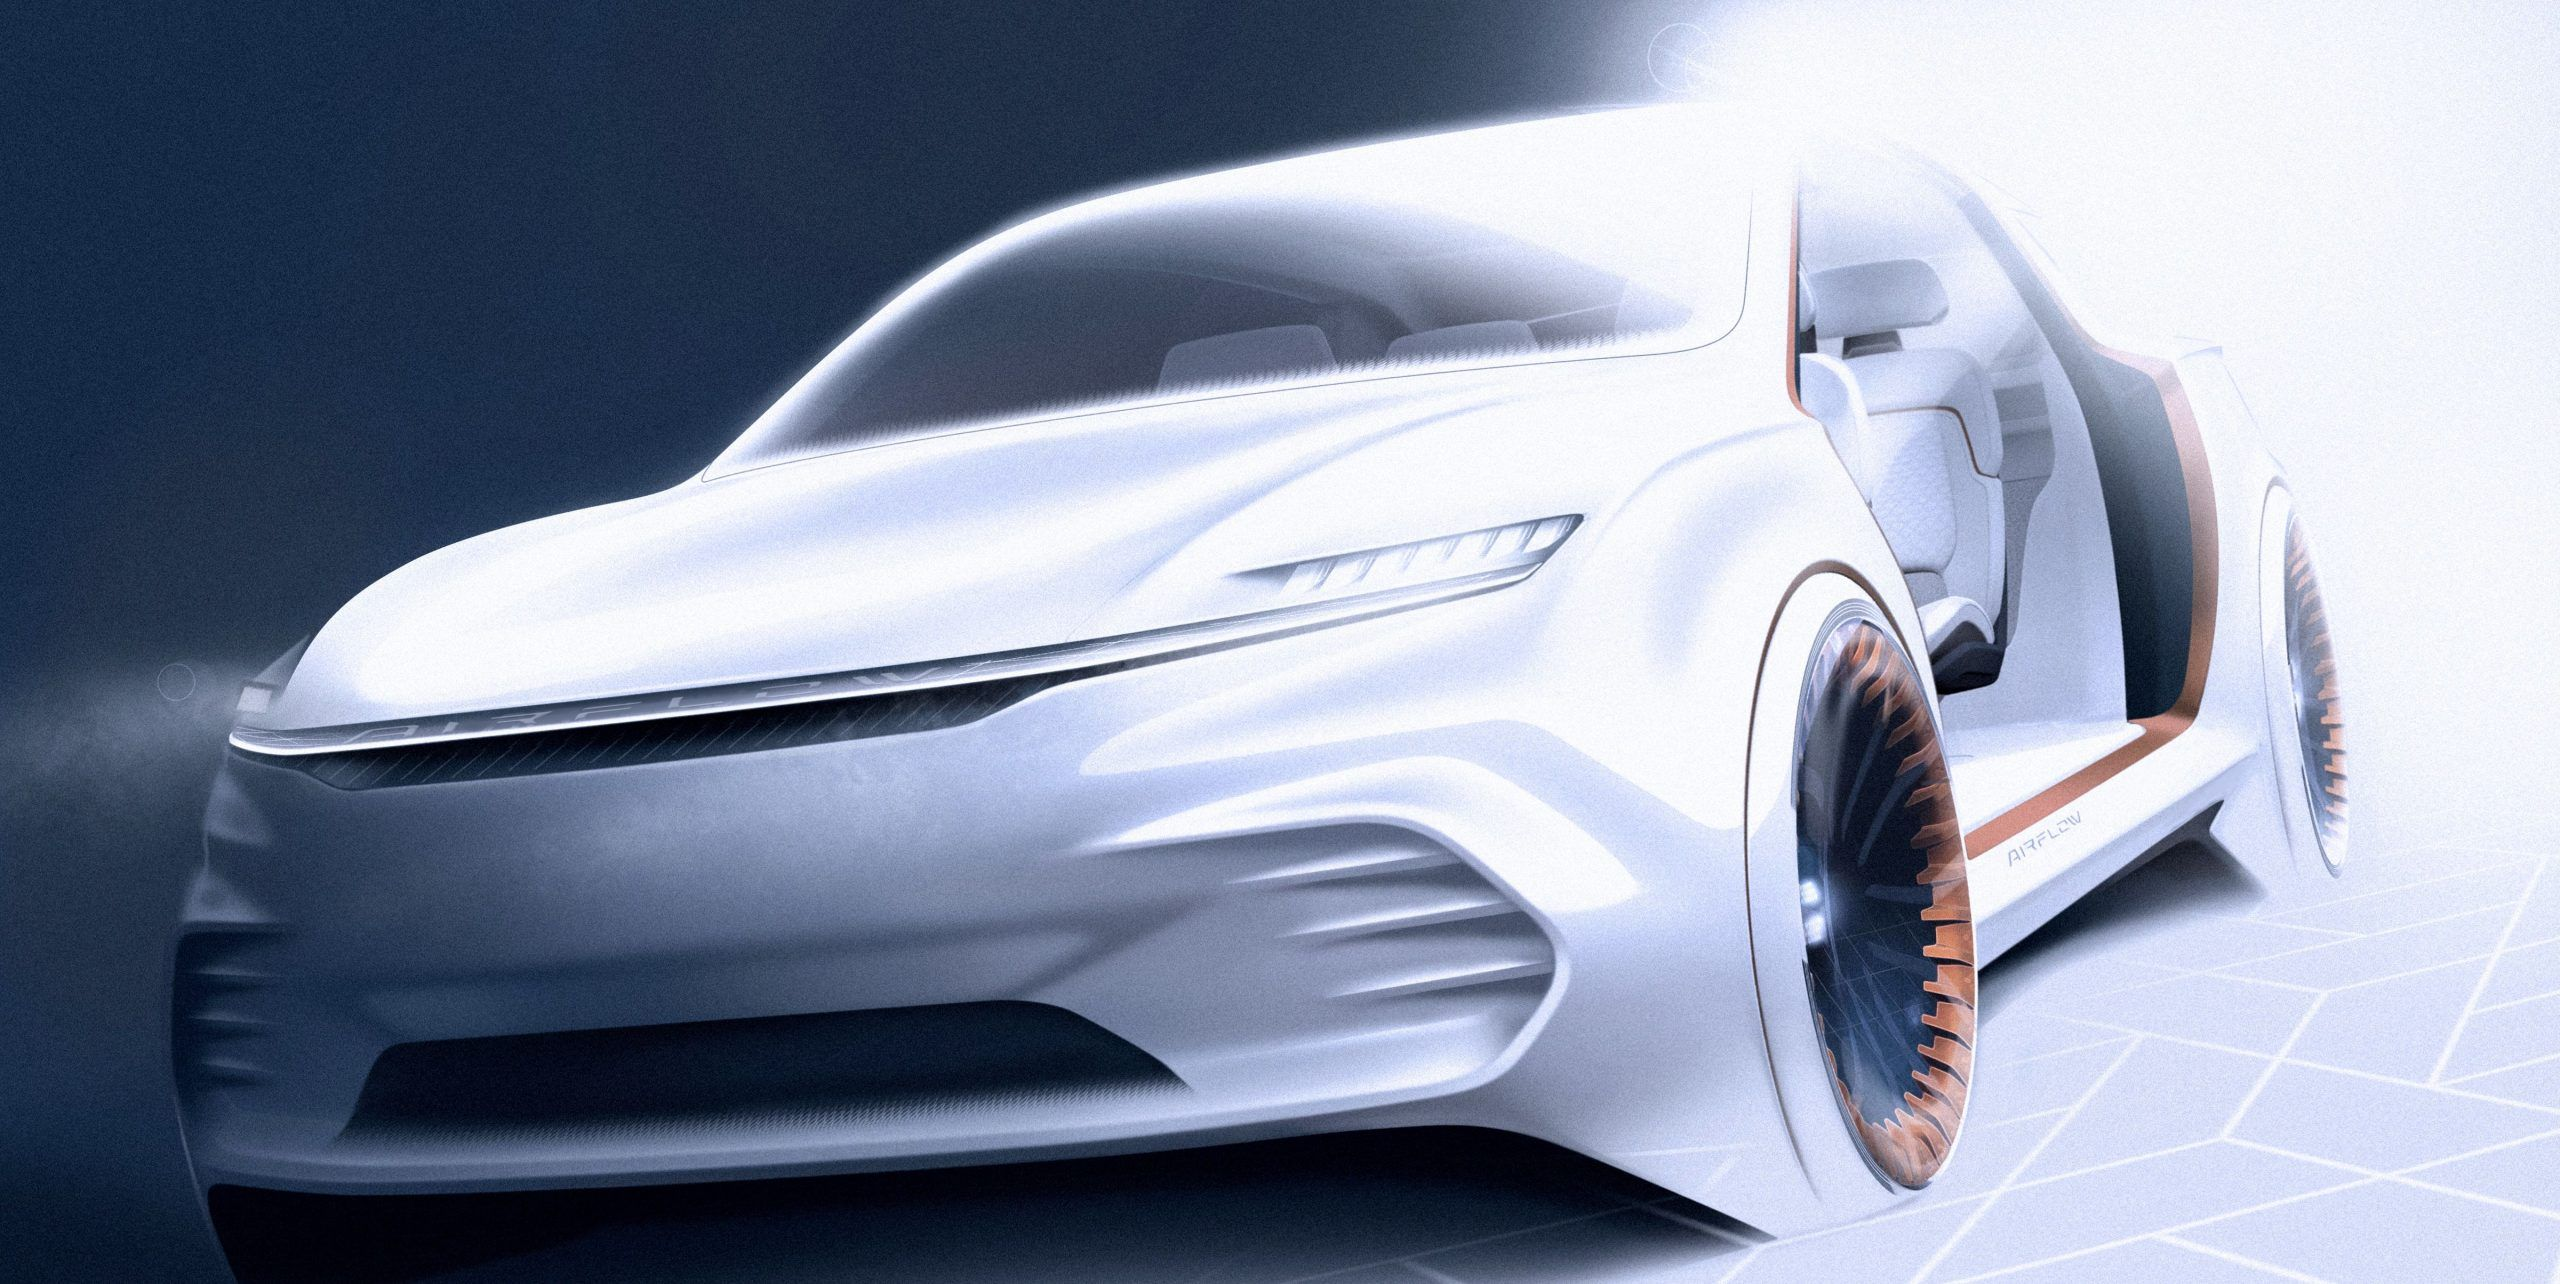 Airflow Vision Concept Revives A Grand Old Chrysler Name In 2020